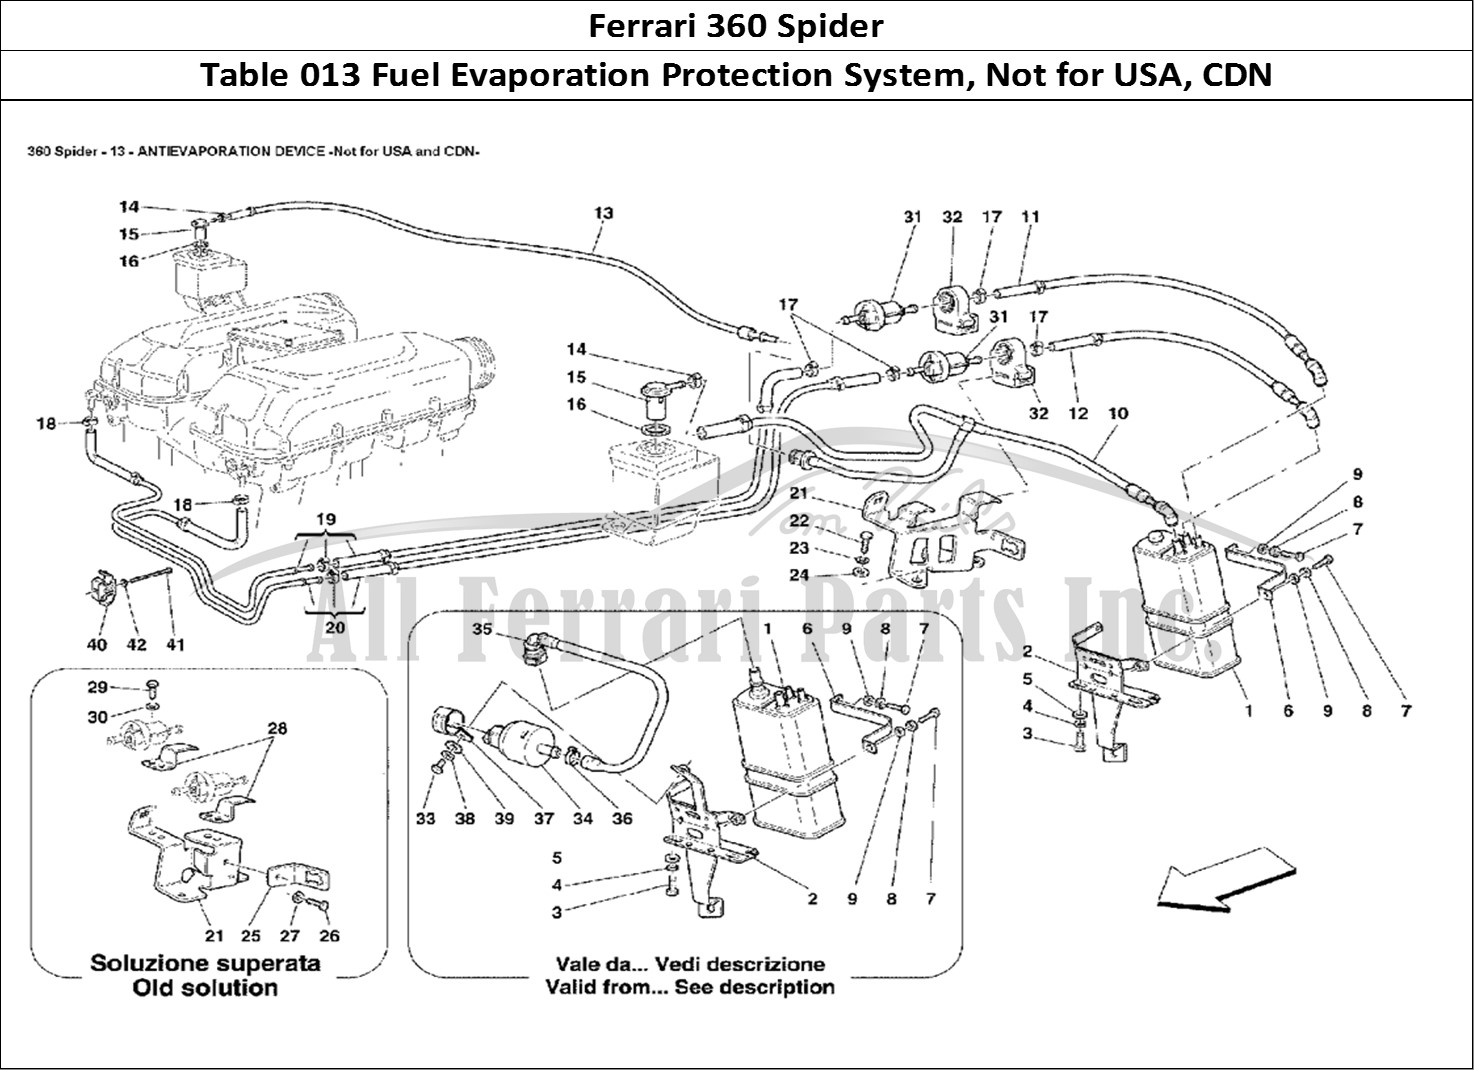 Buy original Ferrari 360 Spider 013 Fuel Evaporation